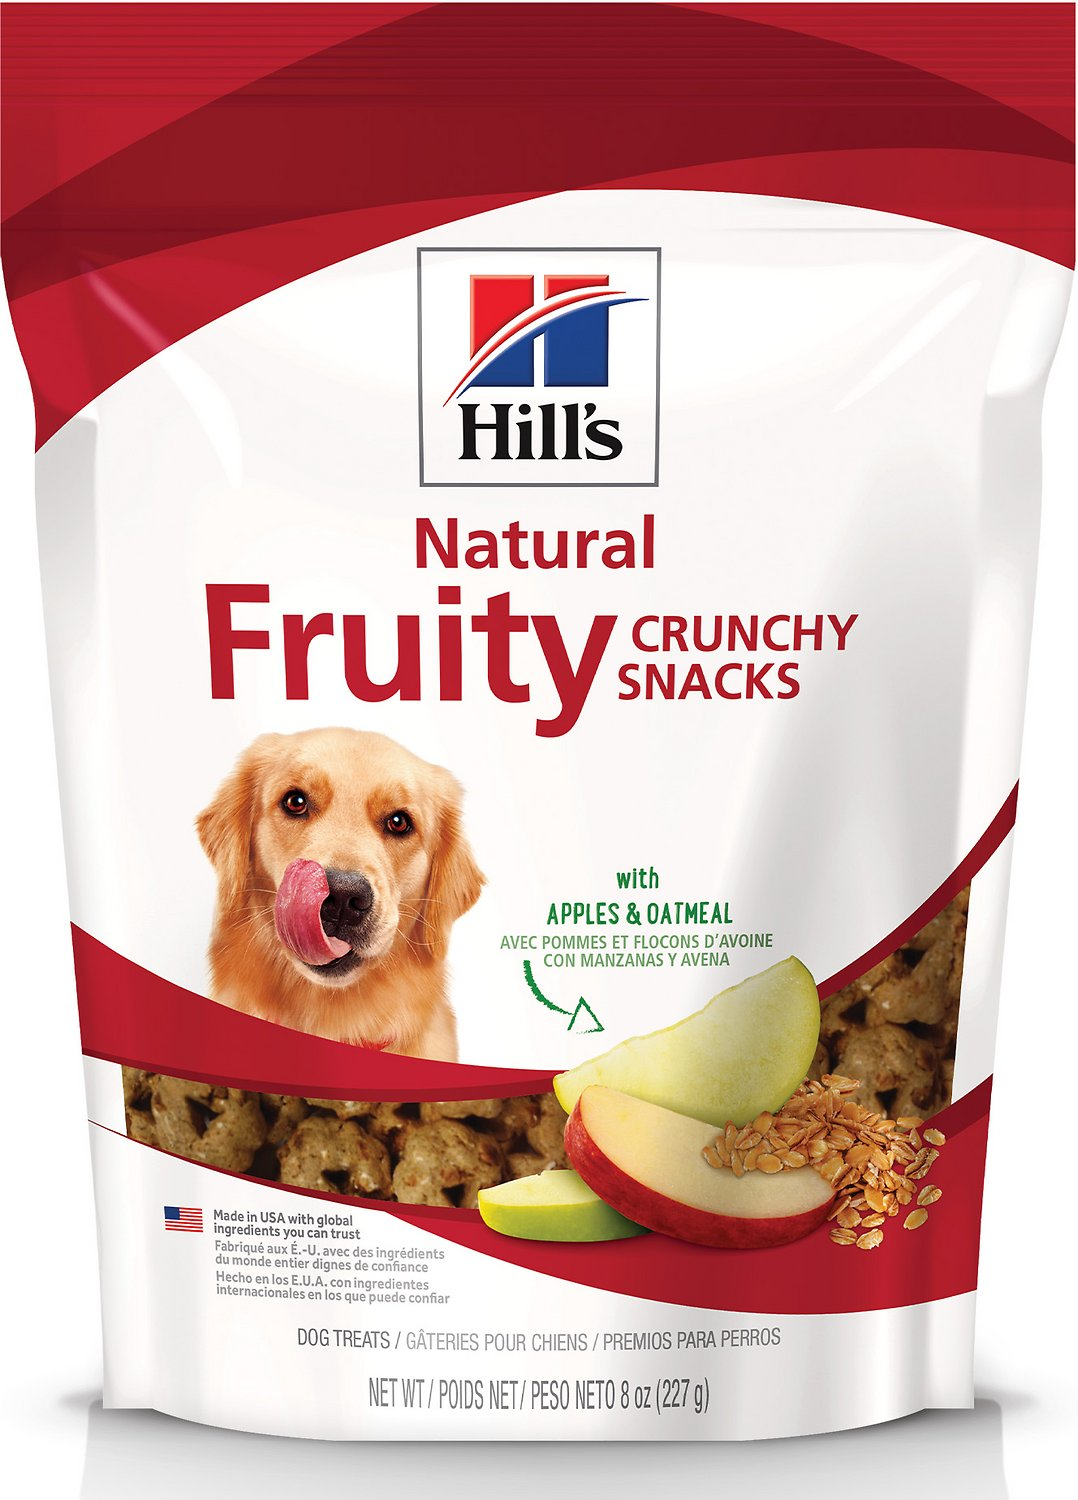 Allergy Free Dog Snacks